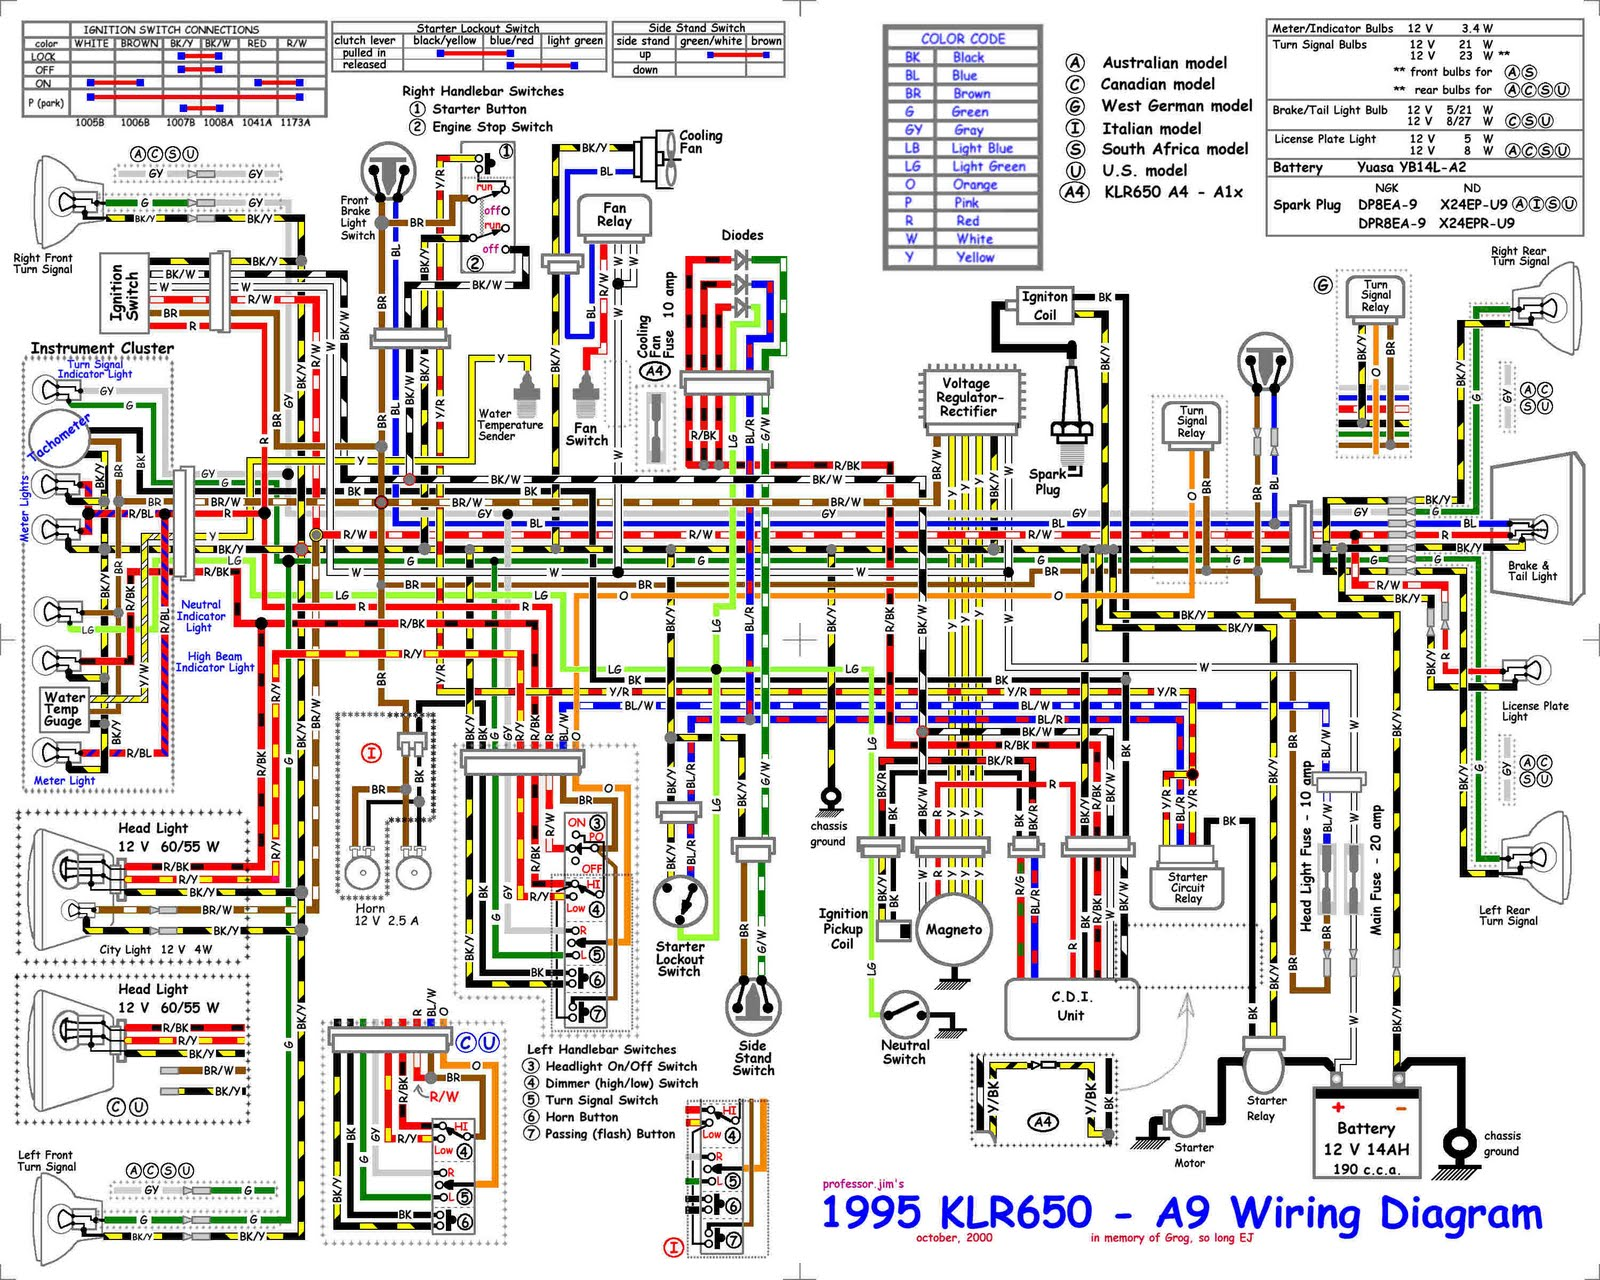 1974 monte carlo wiring diagram free auto wiring diagram 1974 chevrolet monte carlo wiring diagram 1970 gmc truck wiring diagram at beritabola.co